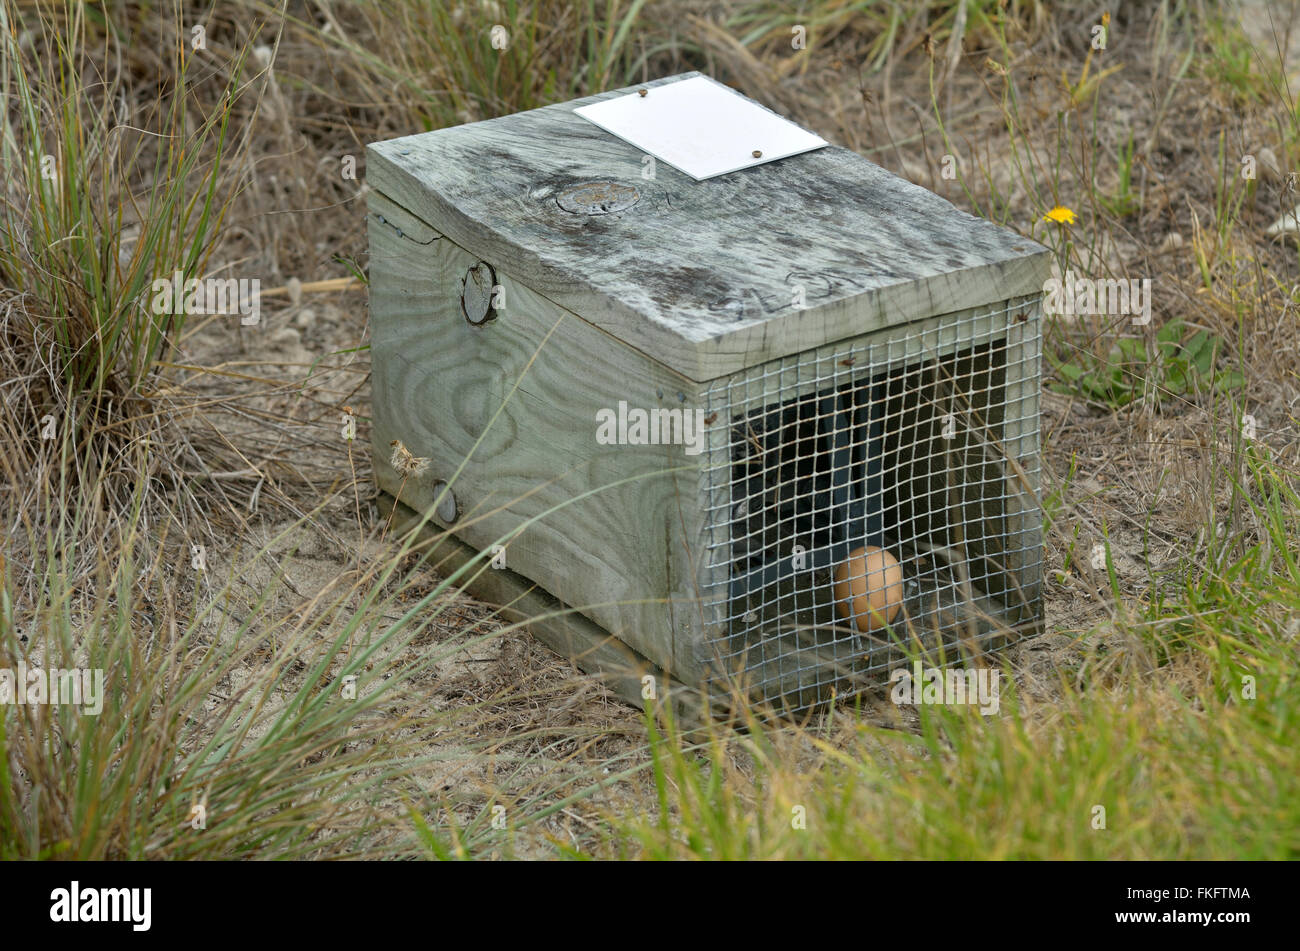 Brown egg in animal cage trap. Removal of animal pests has allowed the reintroduction of native species - Stock Image